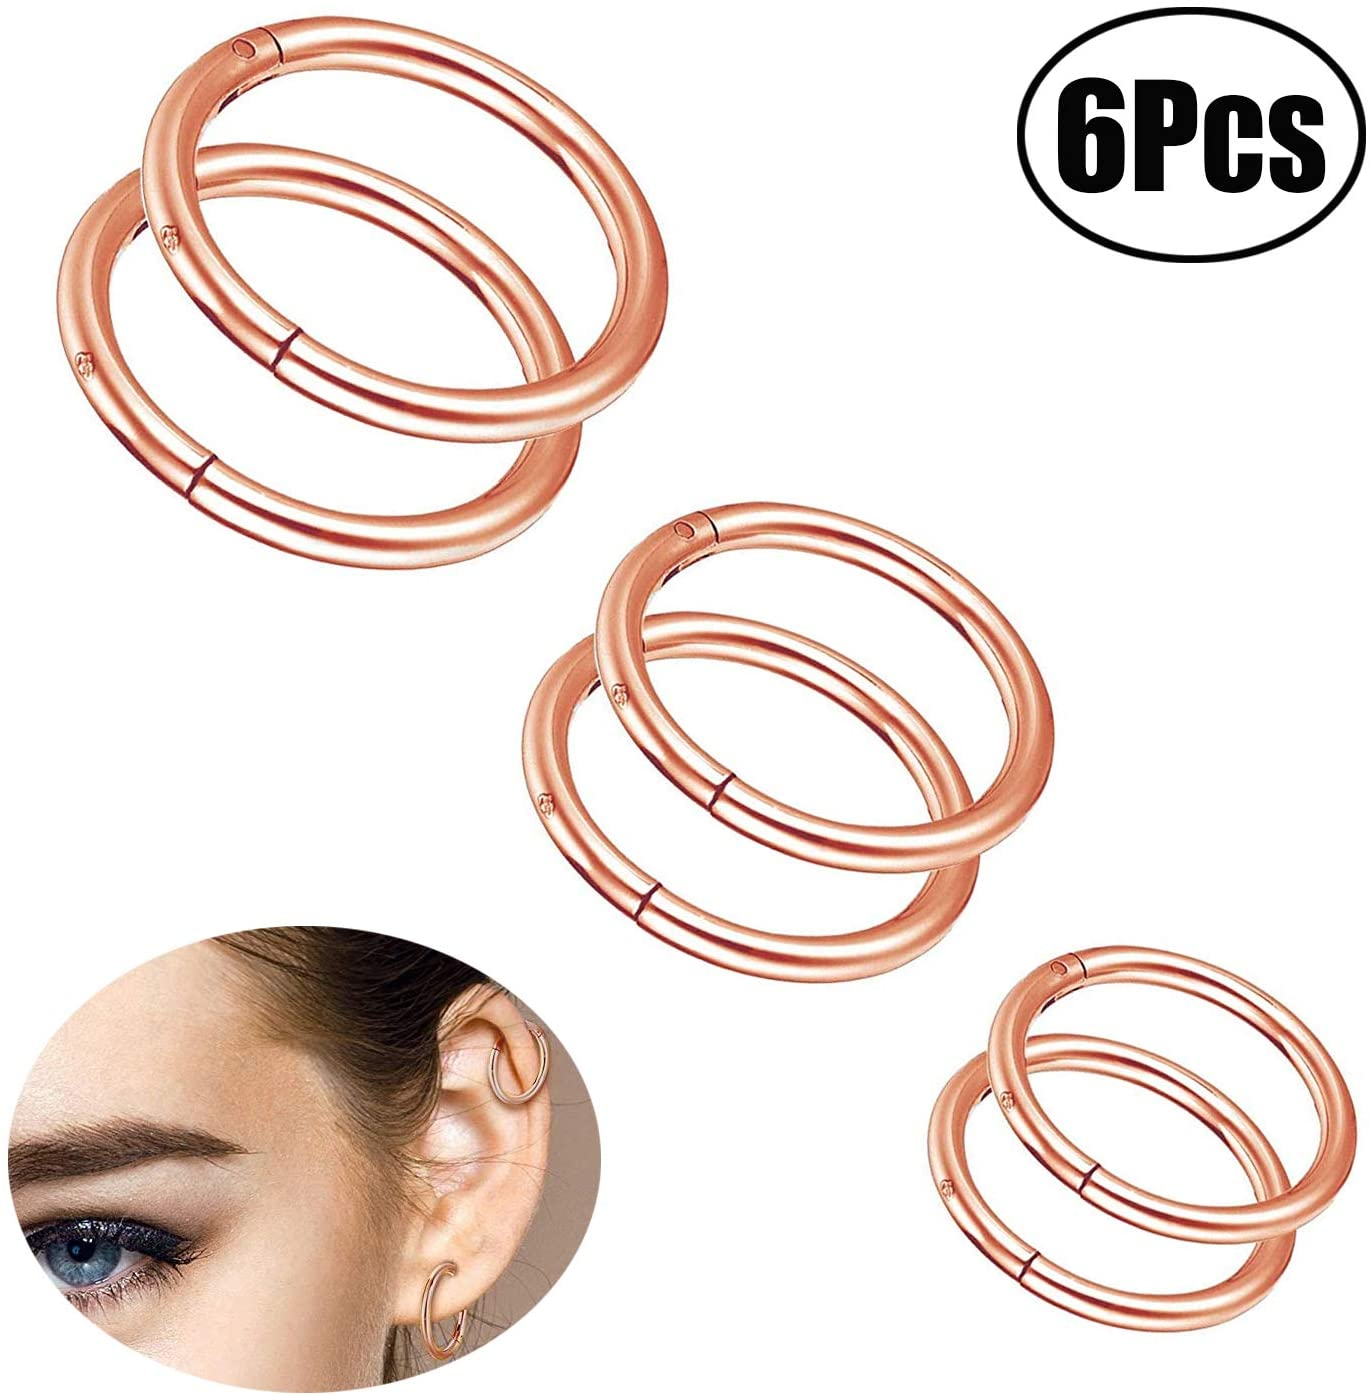 Lvcky 6 Pieces 16 Gauge Stainless Steel Nose Ring Hoop Seamless